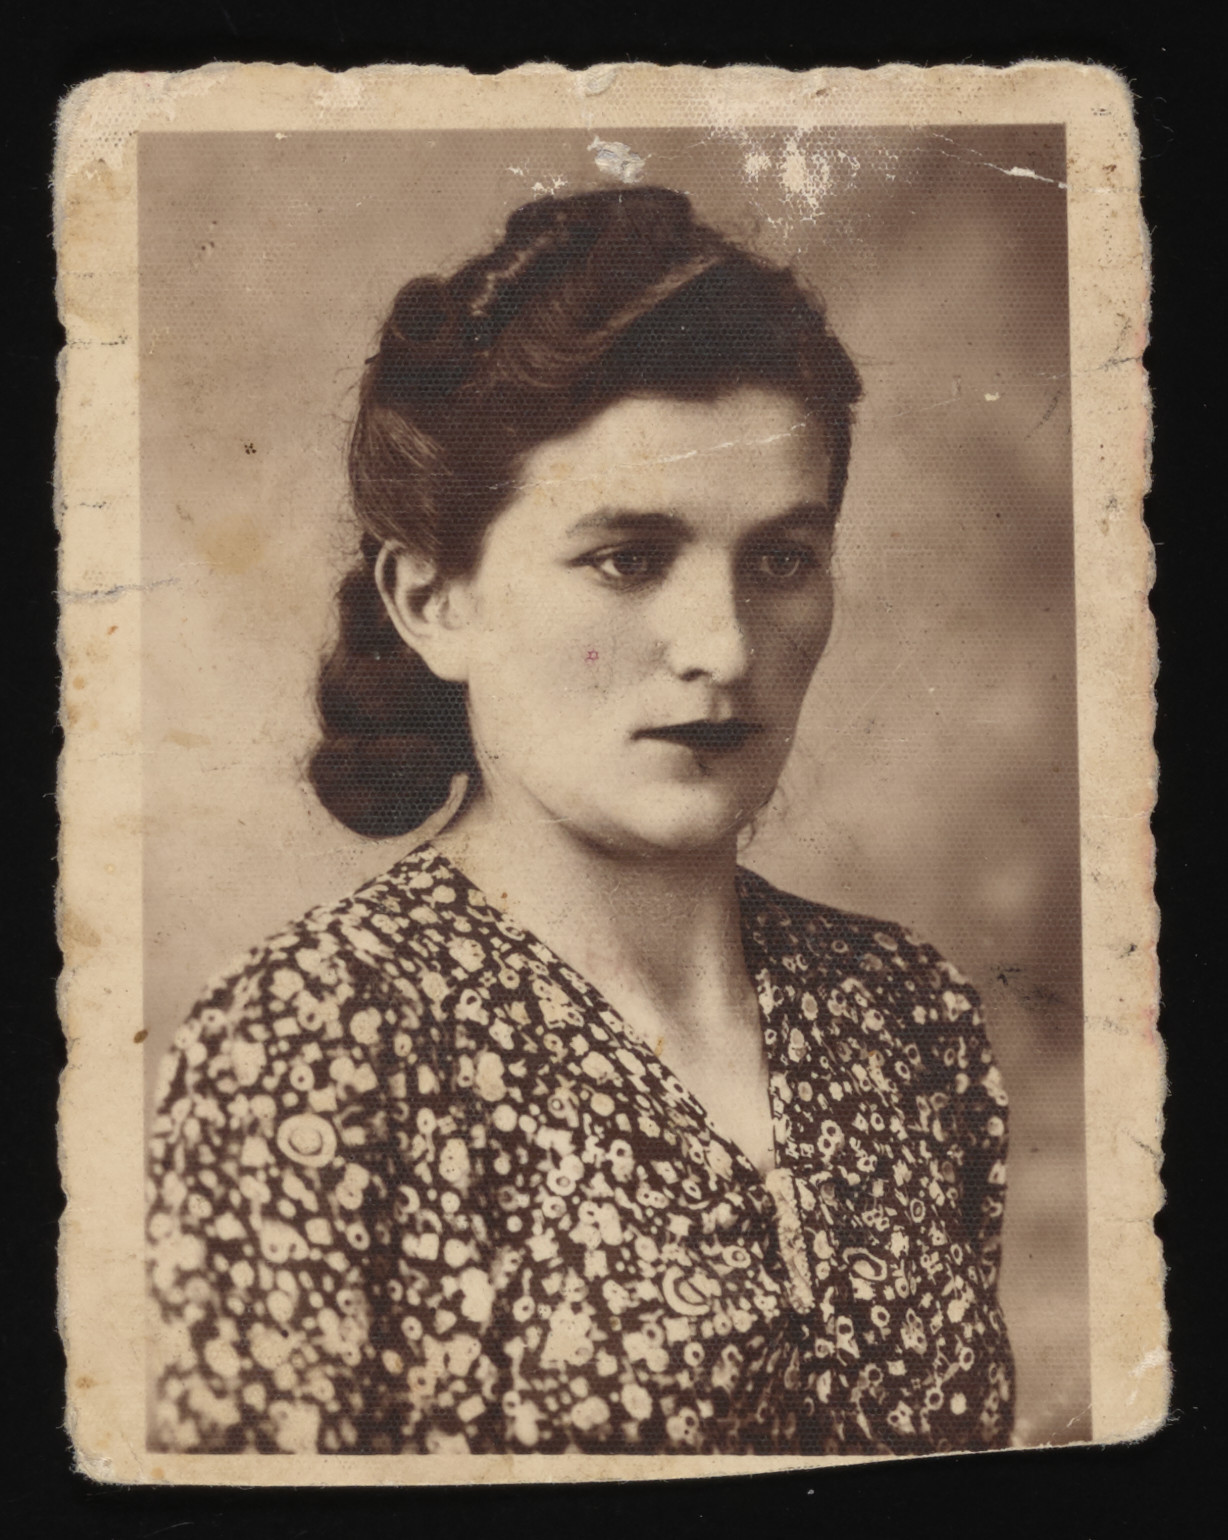 Studio portrait of Chana Wax, an aunt of the donor who perished in Auschwitz.